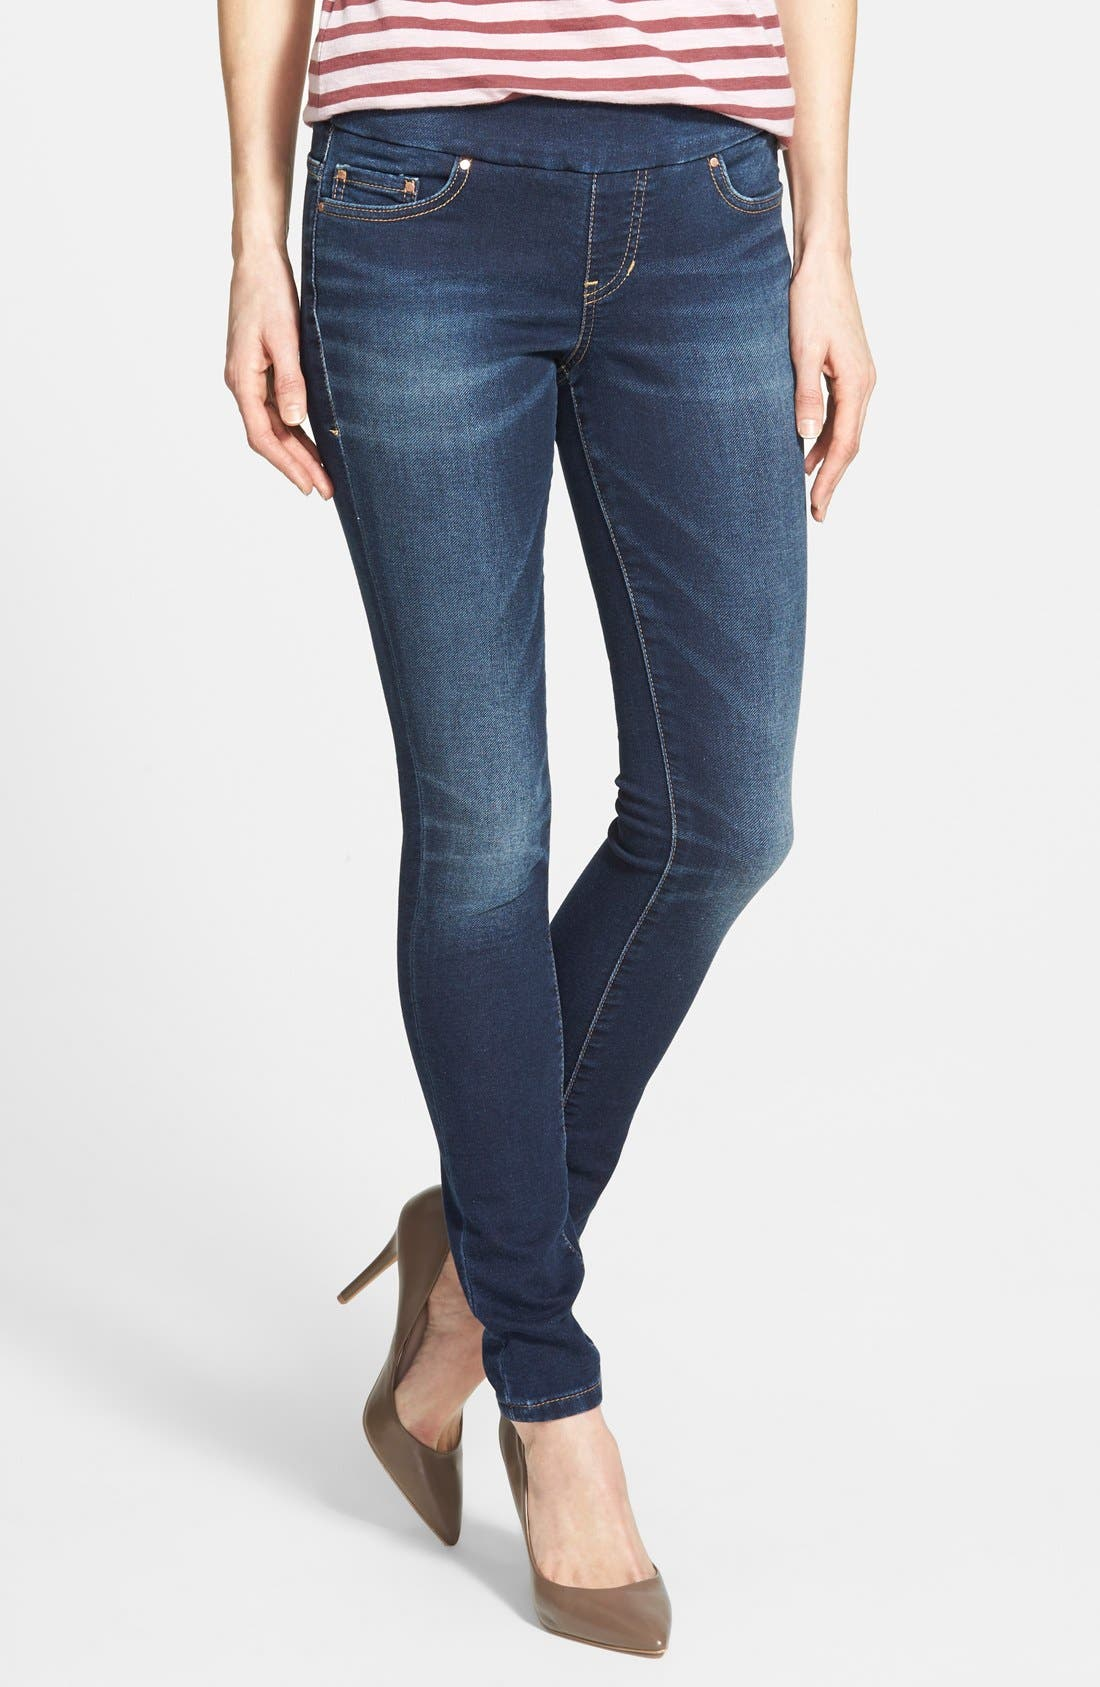 Alternate Image 1 Selected - Jag Jeans 'Nora' Pull-On Stretch Knit Skinny Jeans